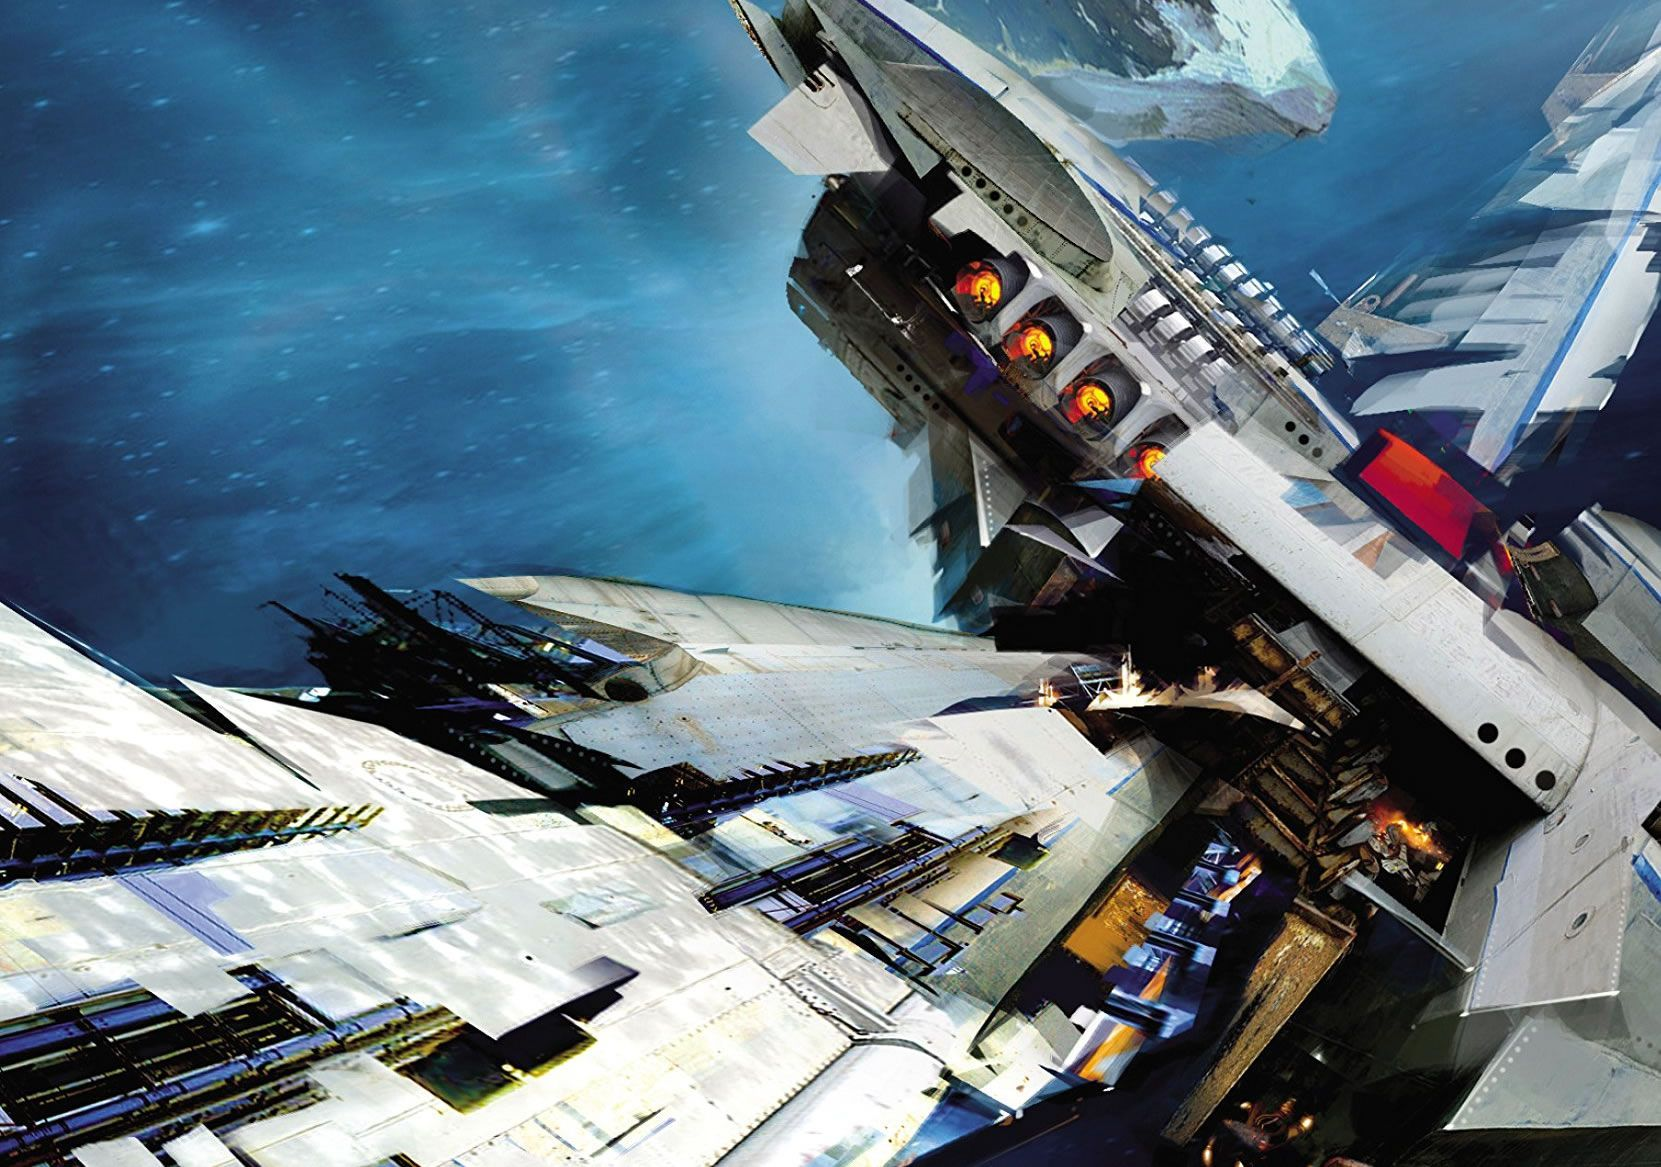 Books I Love: The Expanse Series